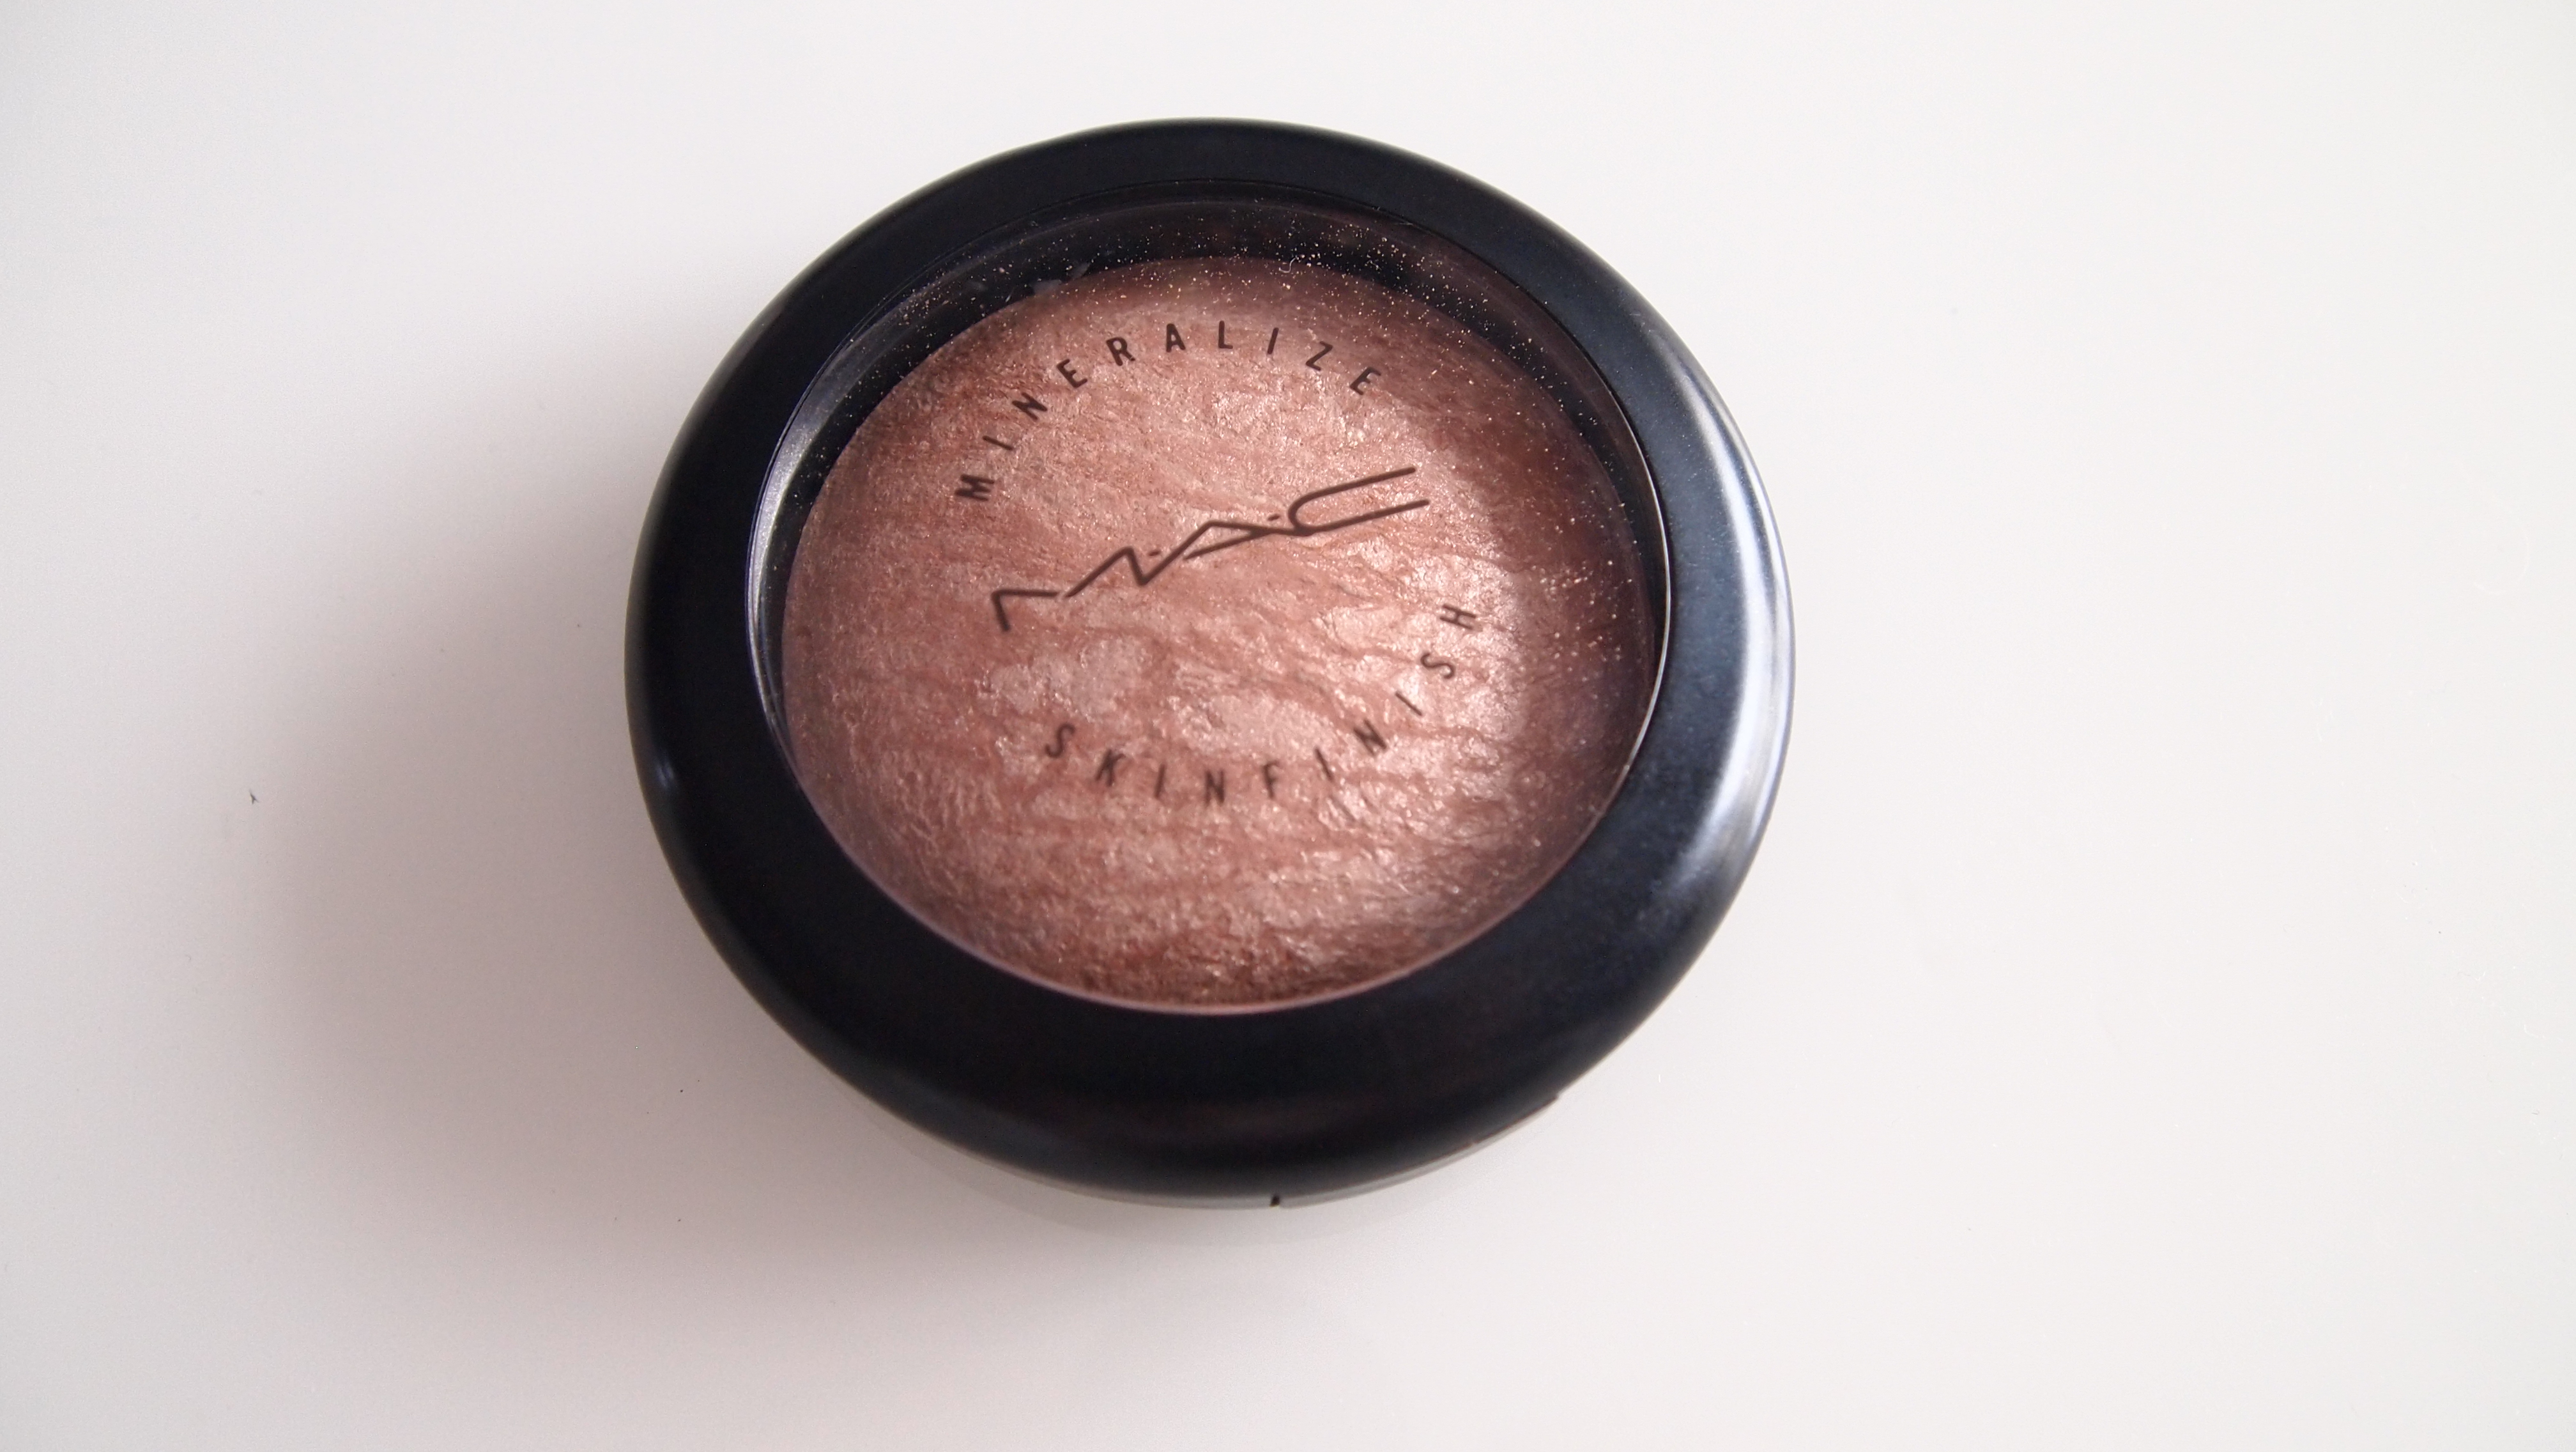 Iluminador En Polvo Mineralize Skinfinish Soft And Gentle Review Mimimimi